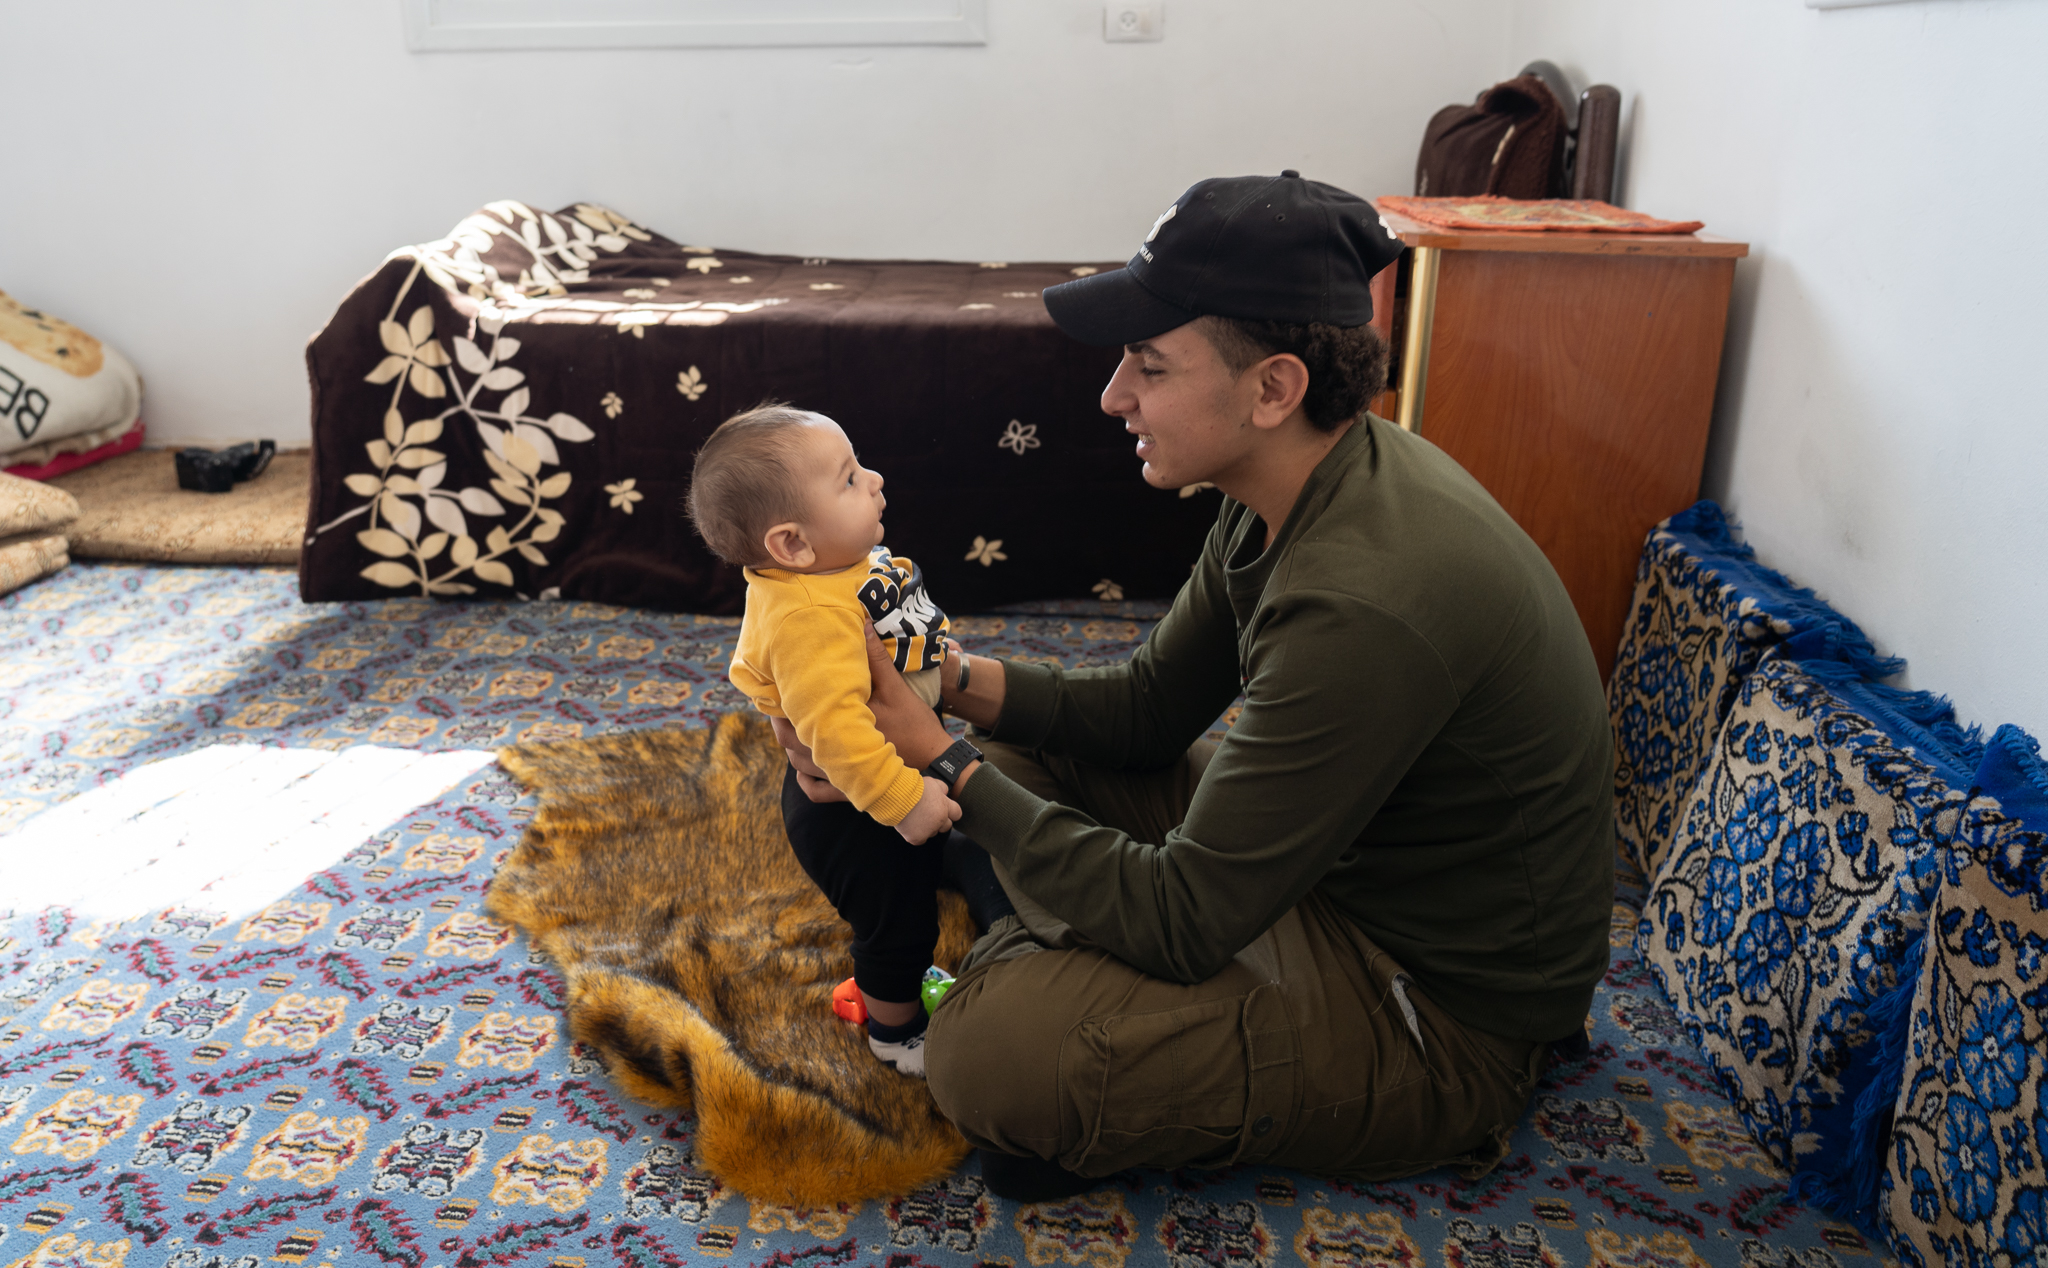 Ismail plays with his baby brother in the family home in Beit Fajjar village in the occupied West Bank. (Photo: DCIP)